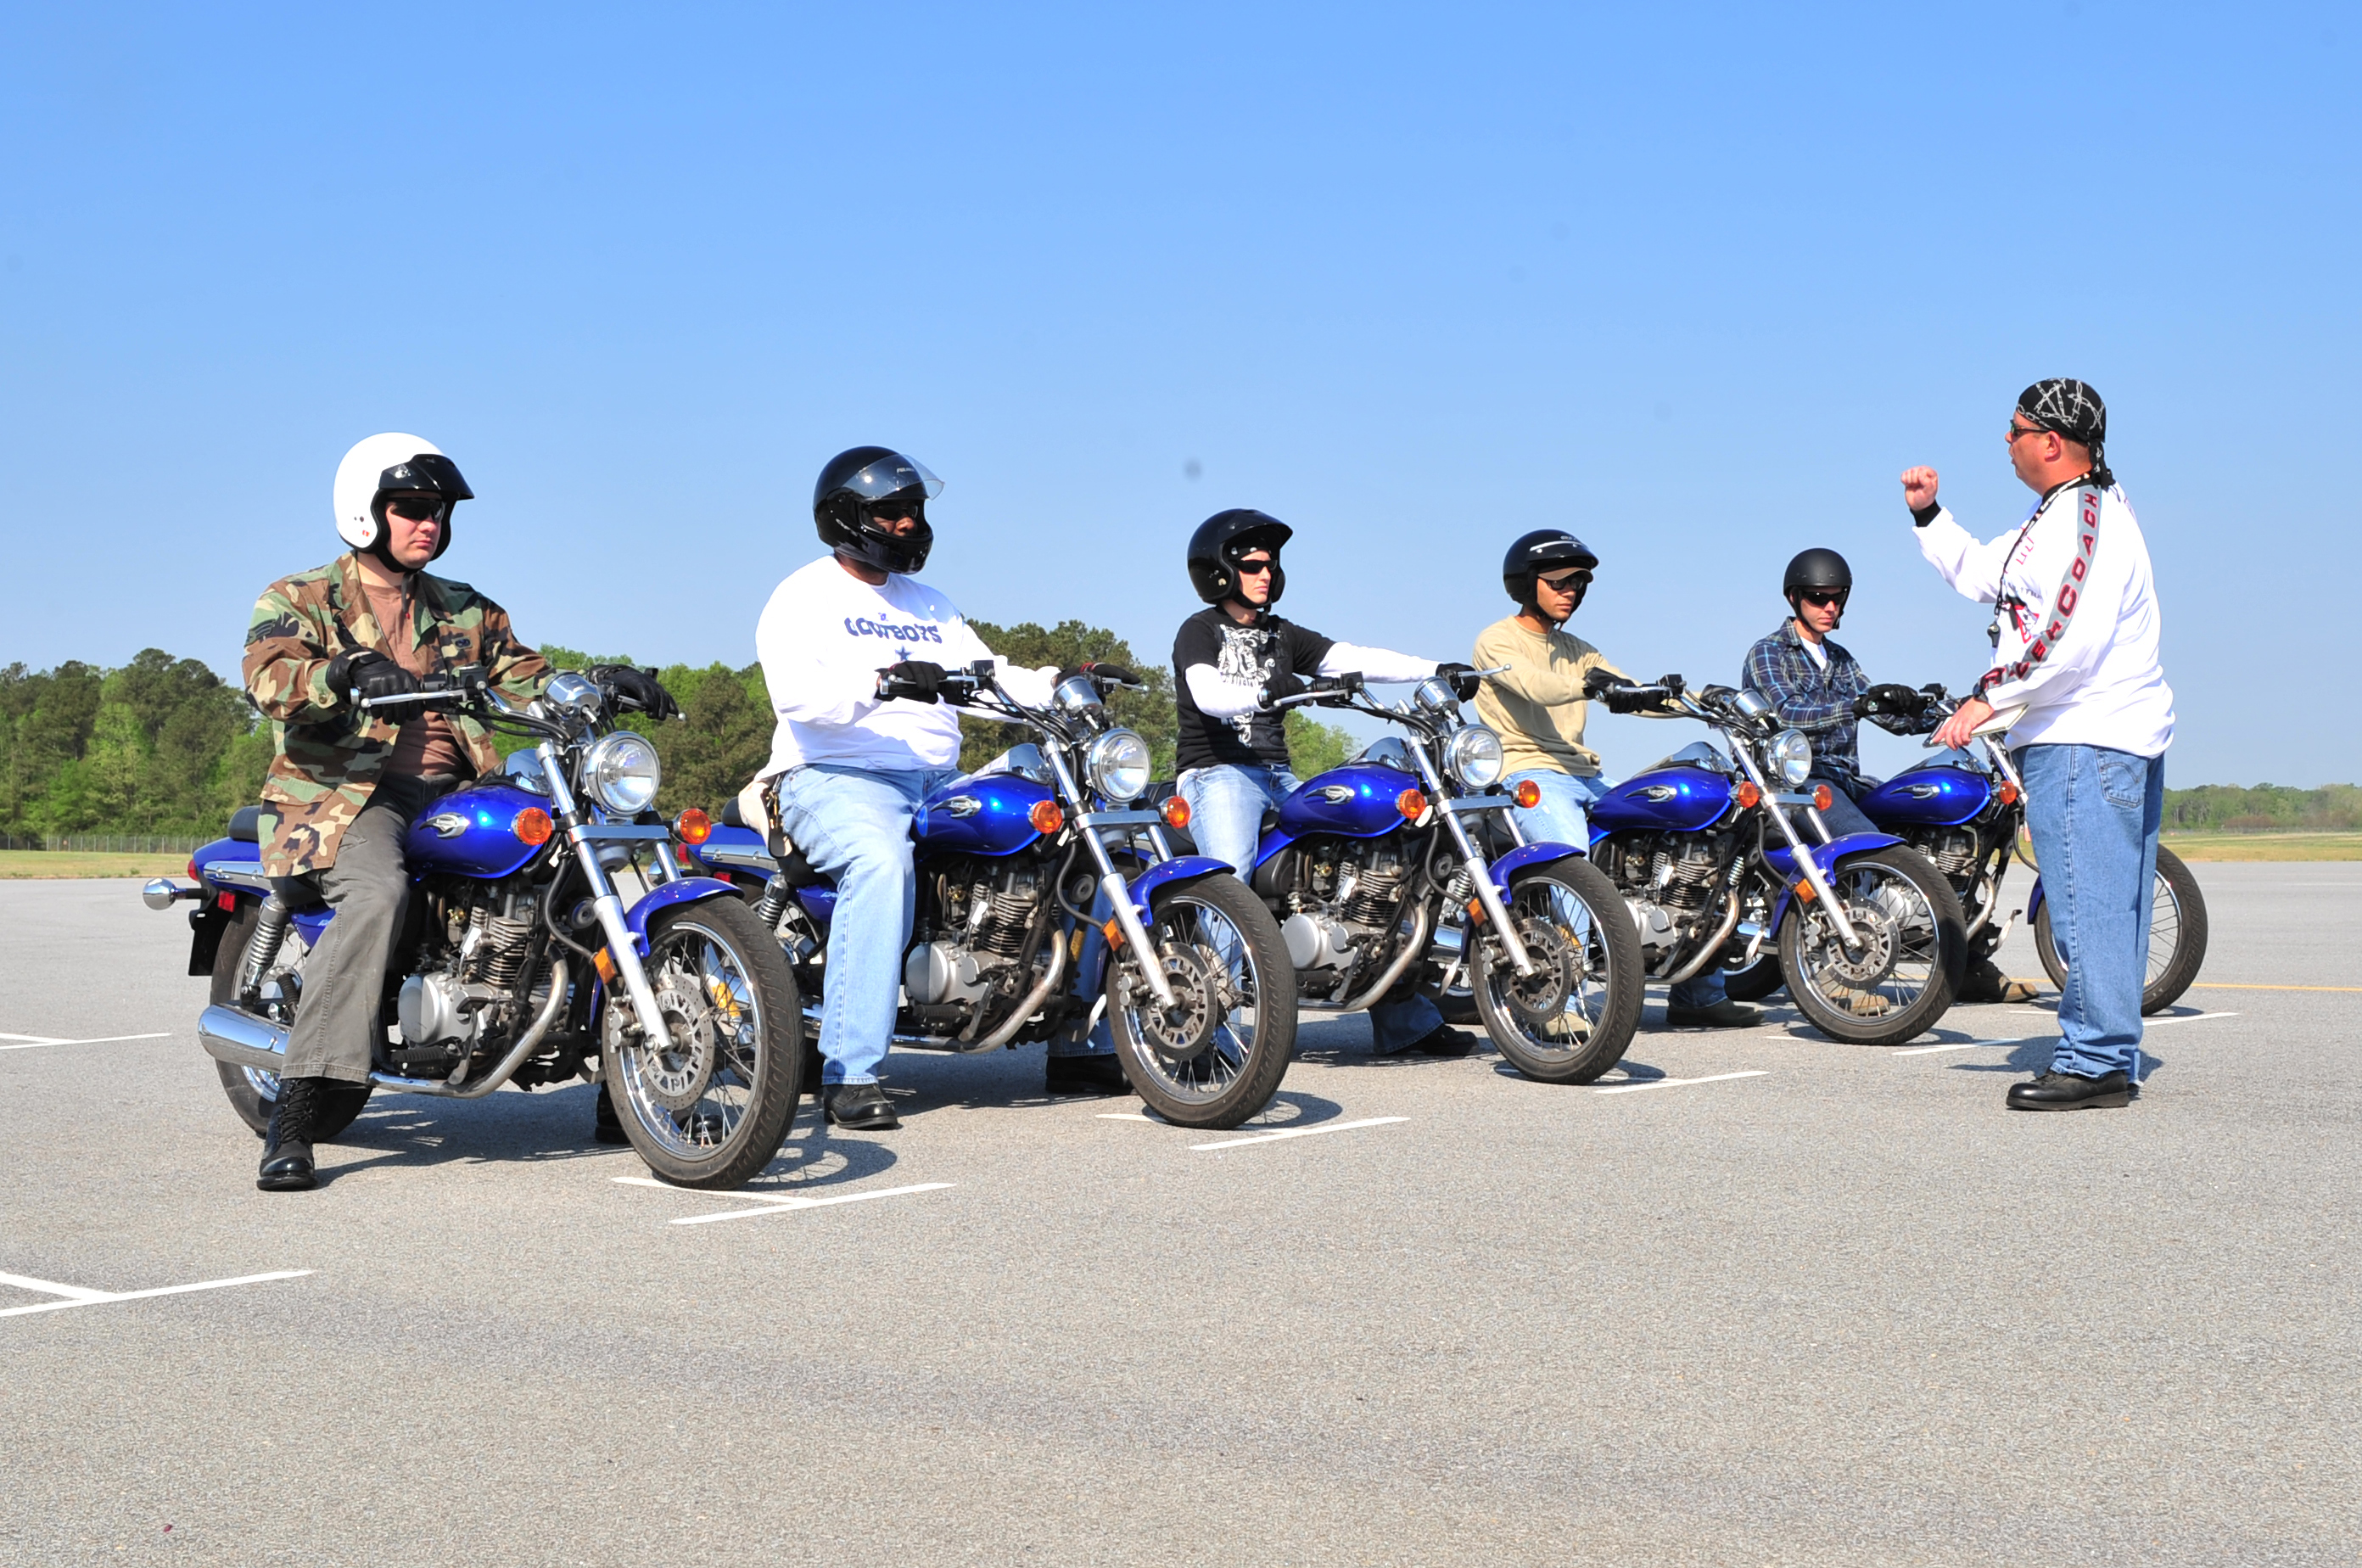 Trainer stands in front of a line of men sat on motorcycles